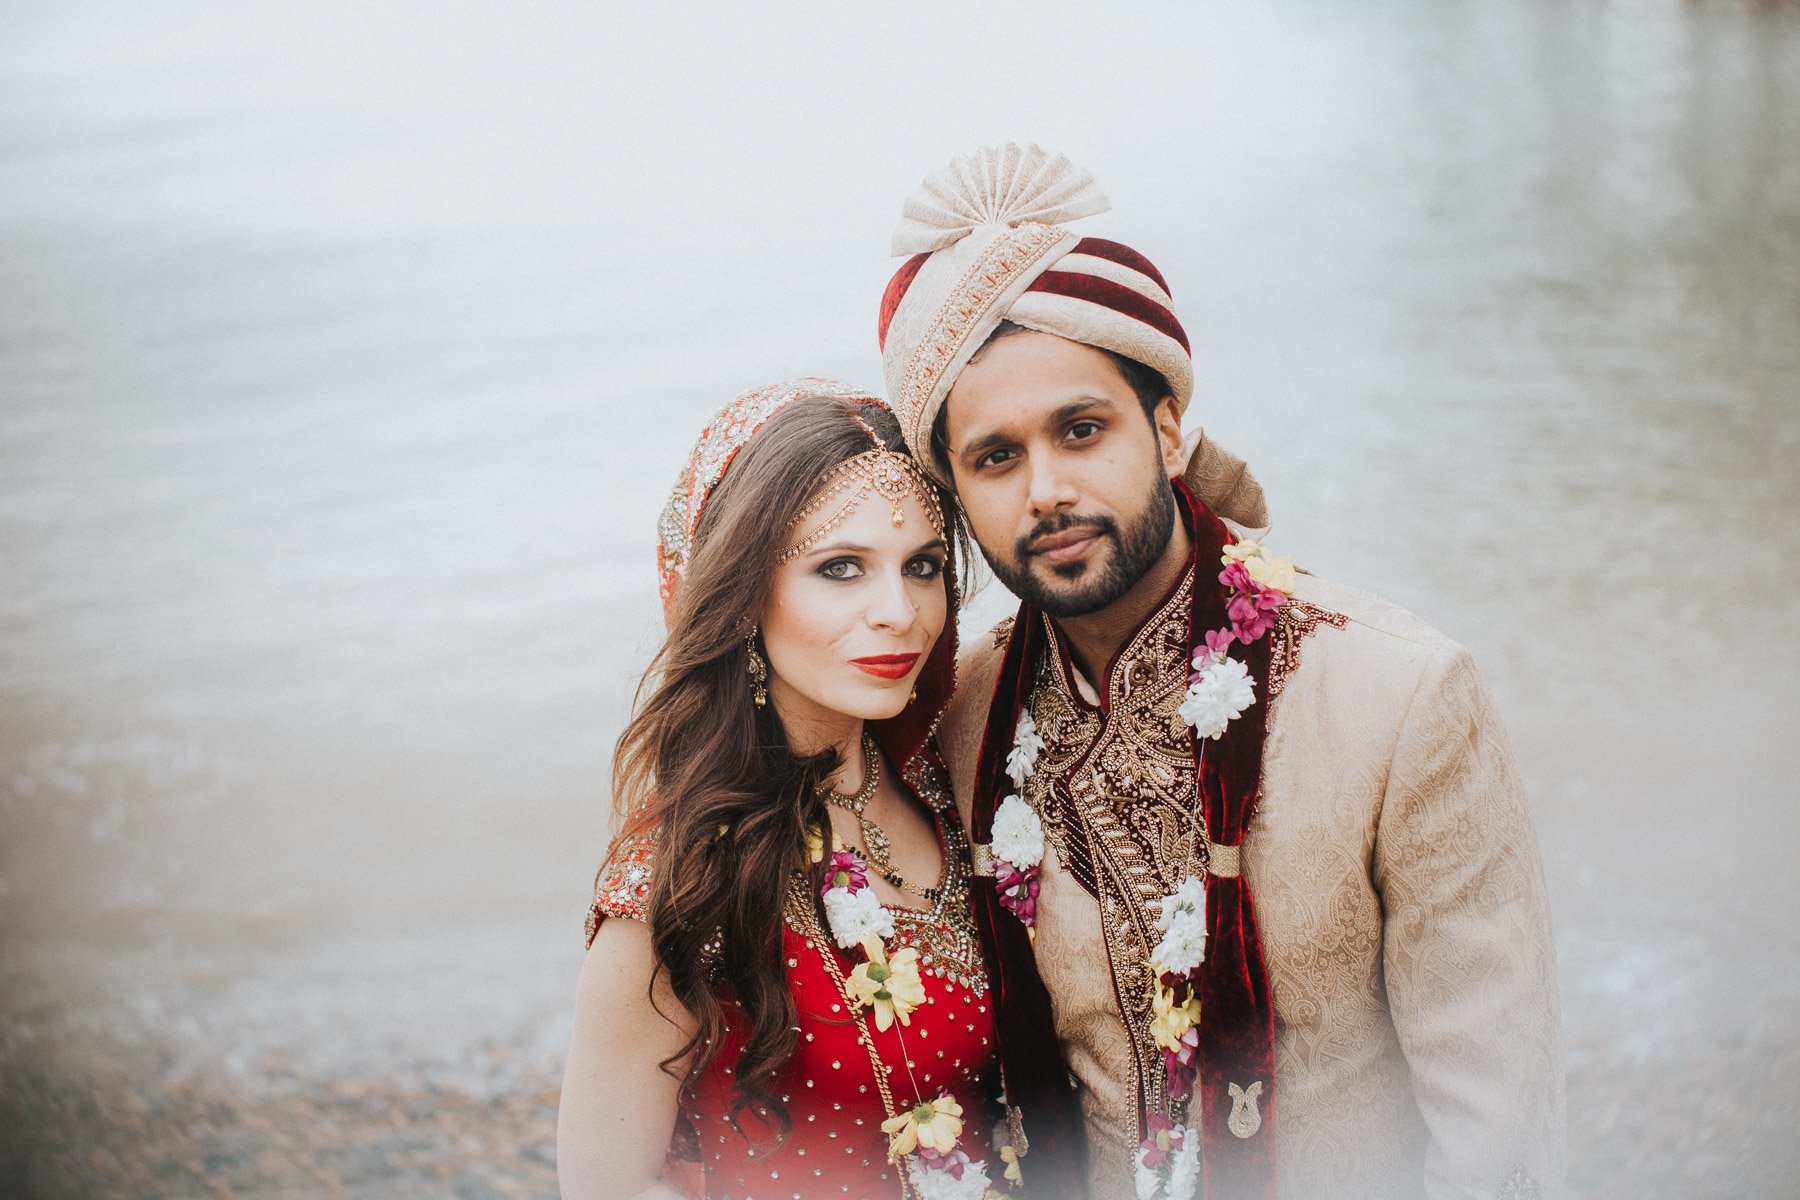 Asian wedding photography and video